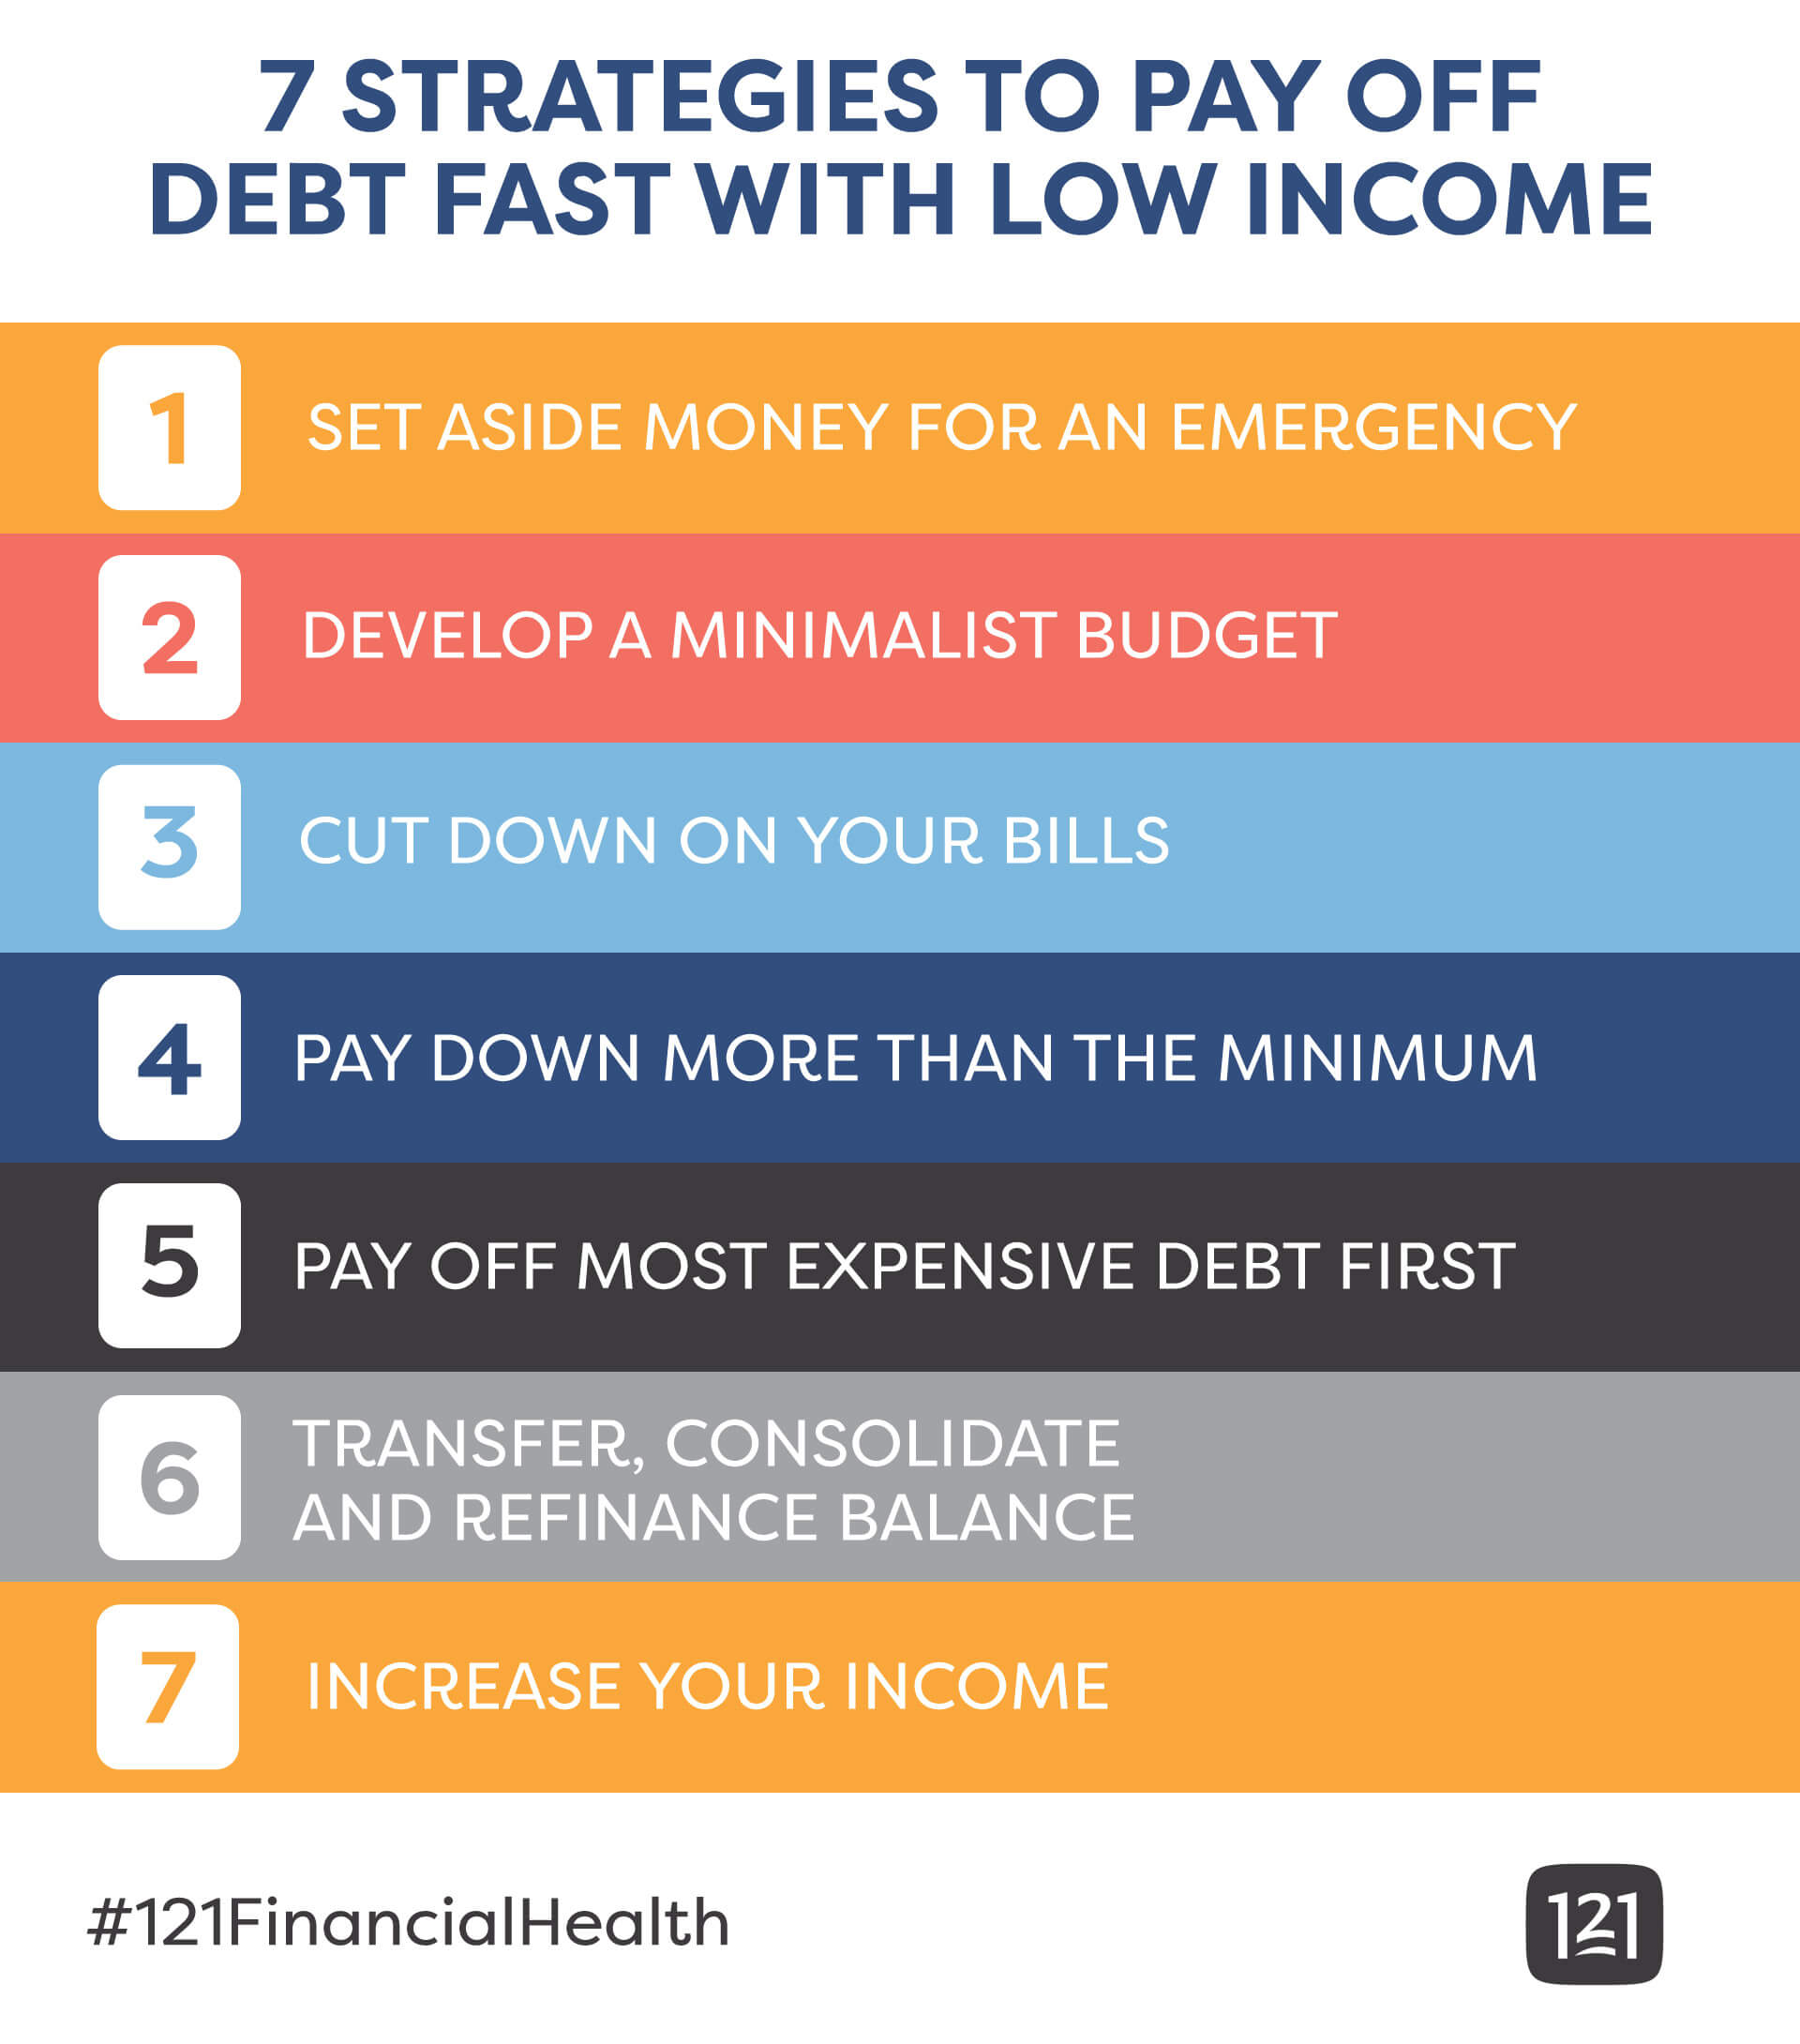 7 strategies to pay off debt fast with low income